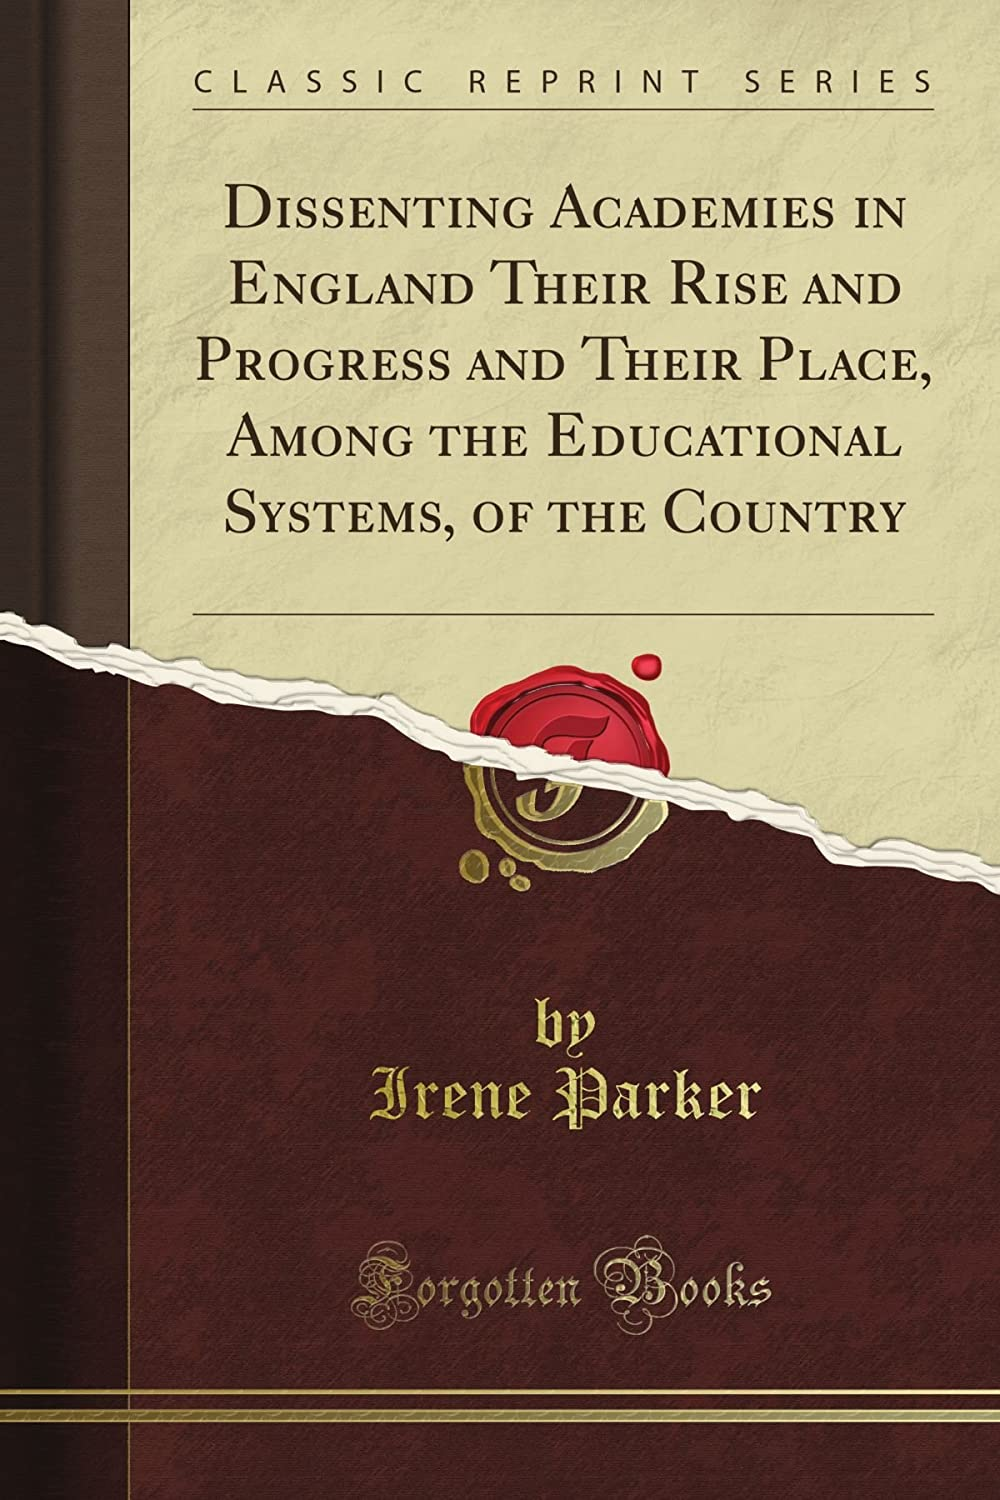 Dissenting Academies in England Their Rise and Progress and Their Place, Among the Educational Systems, of the Country (Classic Reprint)